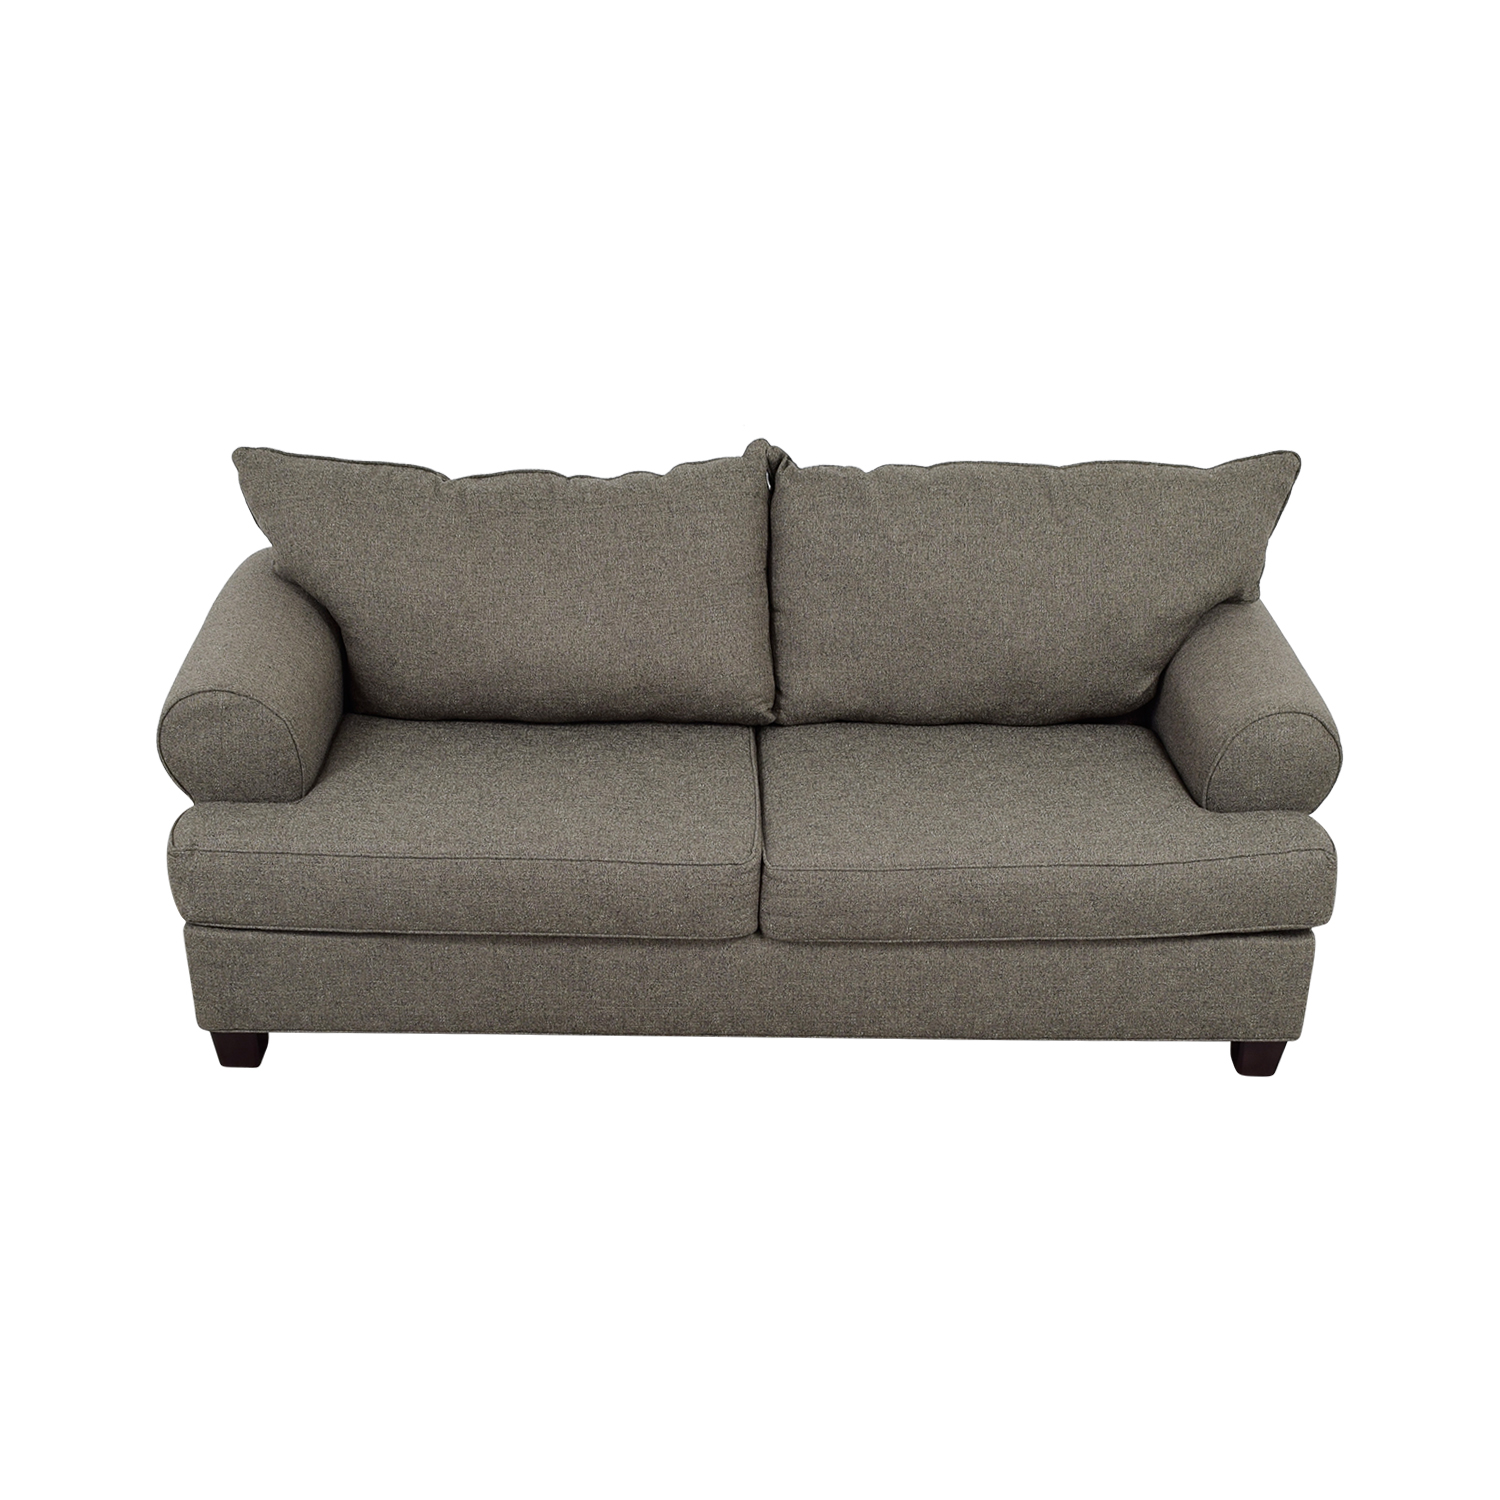 buy Bobs Furniture Tweed Sofa Bobs Furniture Classic Sofas